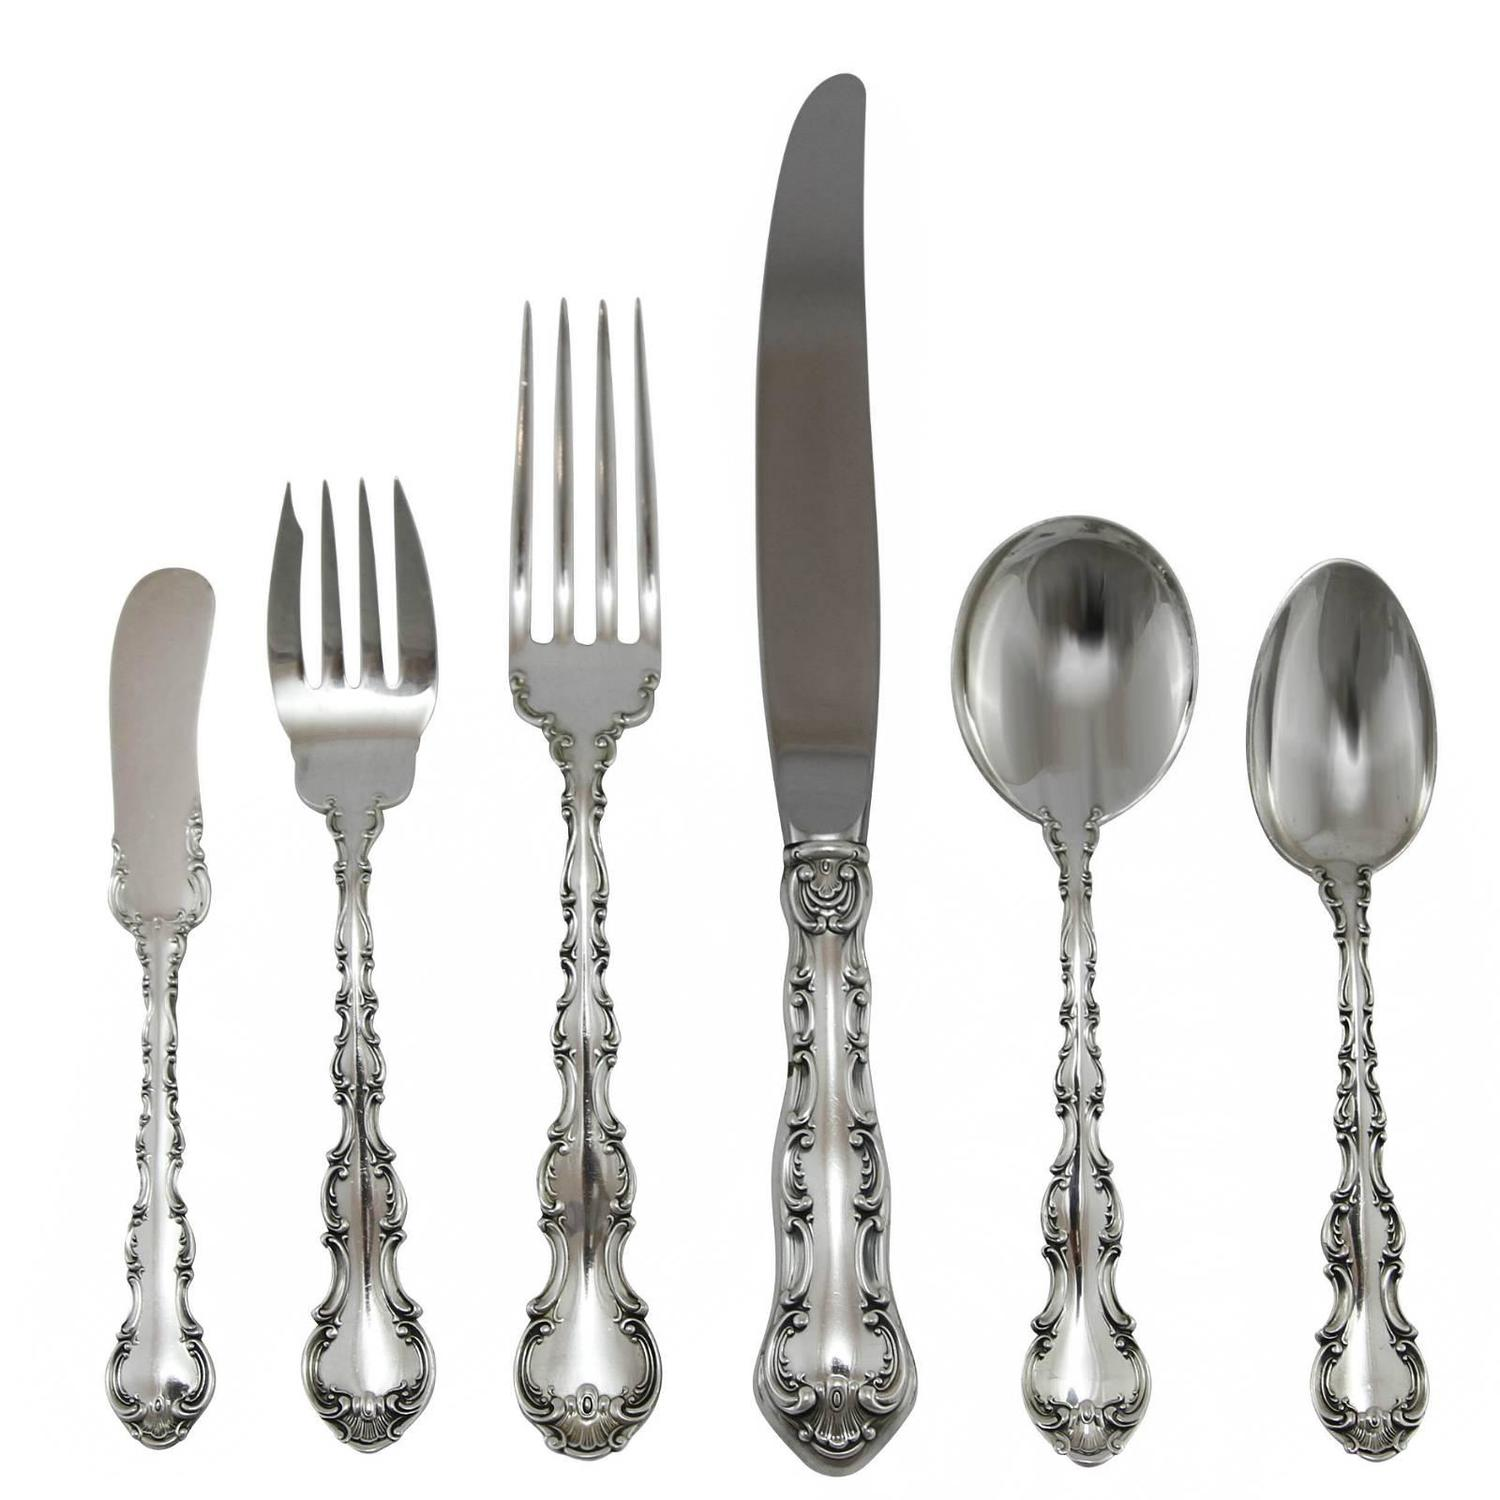 20th century sterling silver flatware set in the pattern by gorham - Sterling Silver Flatware